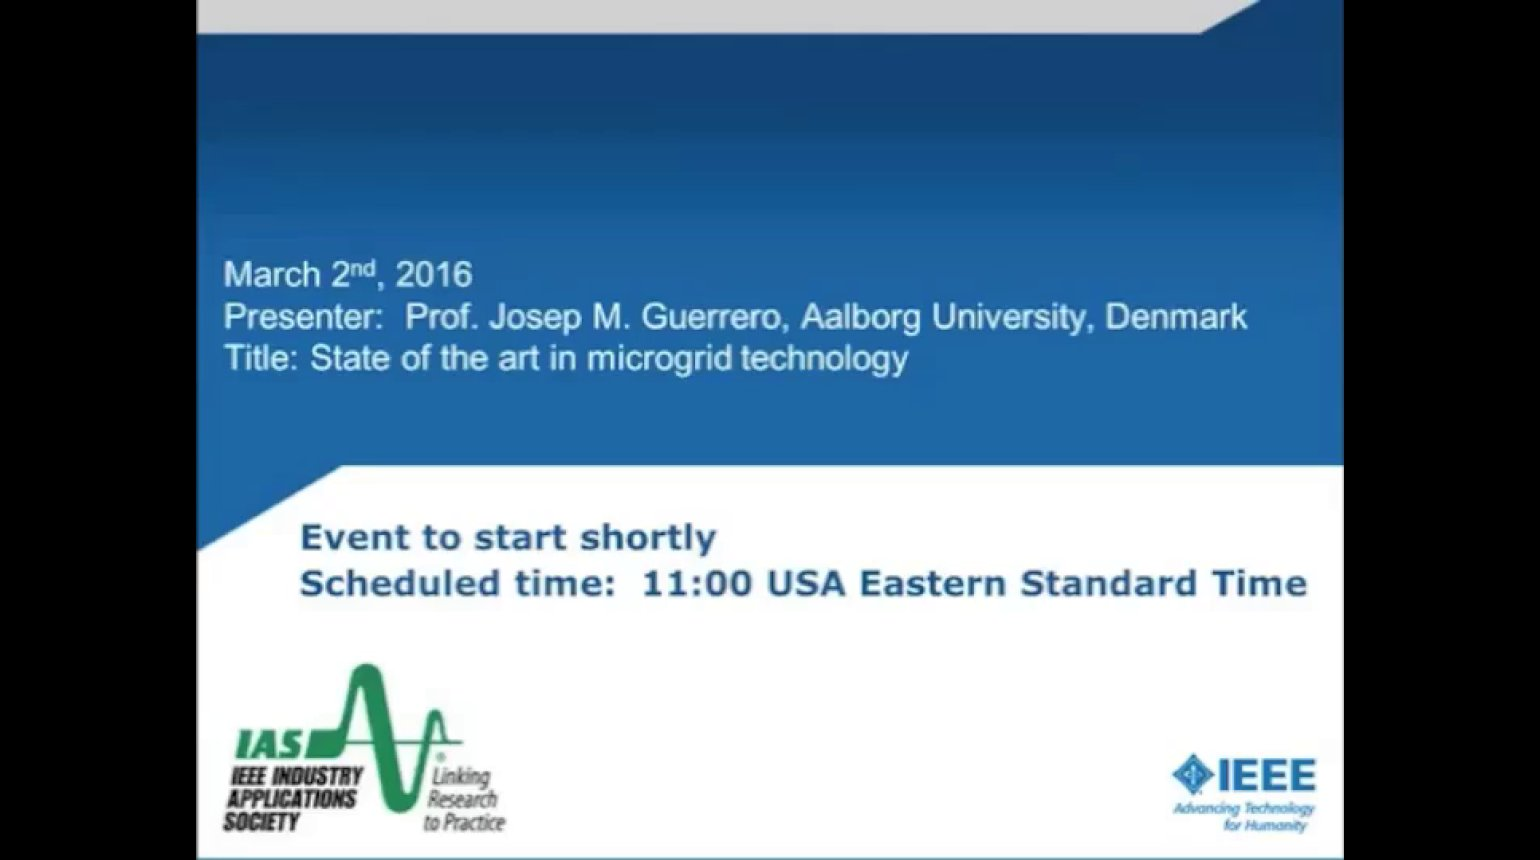 IAS Webinar Series -State of the Art in Microgrid Technology